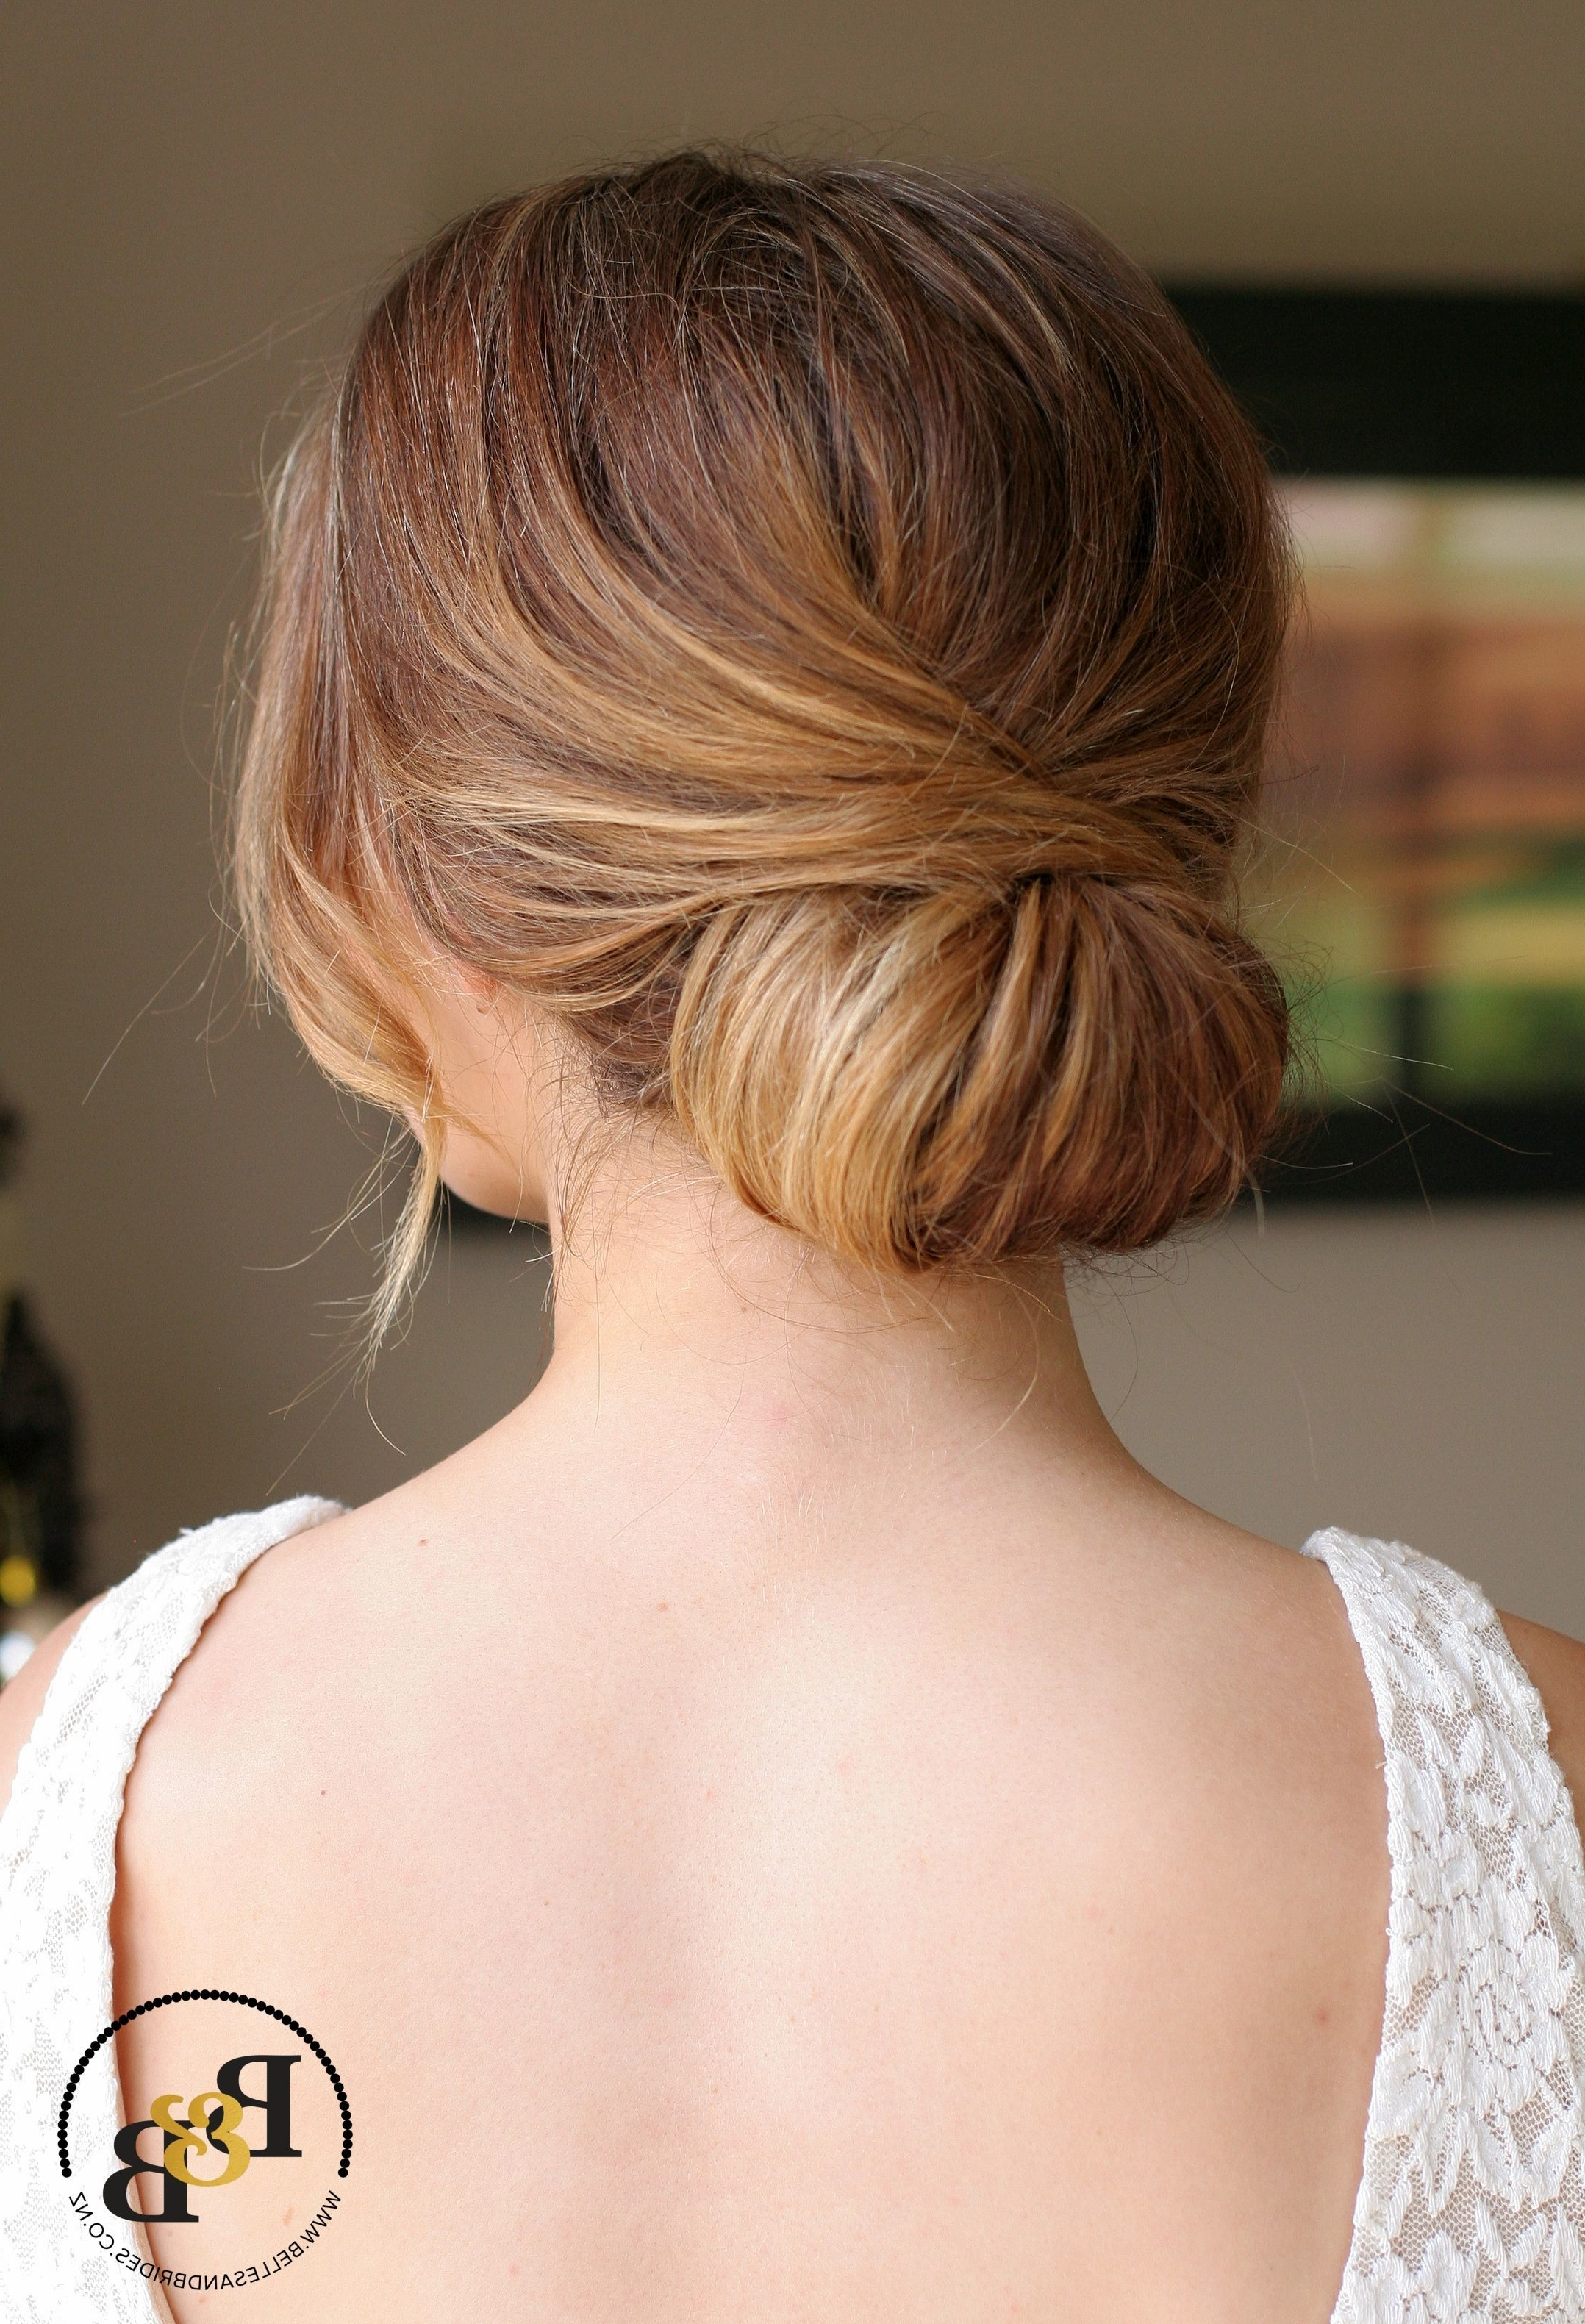 Well Known Low Bun Wedding Hairstyles Regarding Useful Low Bun Wedding Hairstyle In Wedding Hair Low Chignon Casual (View 14 of 15)